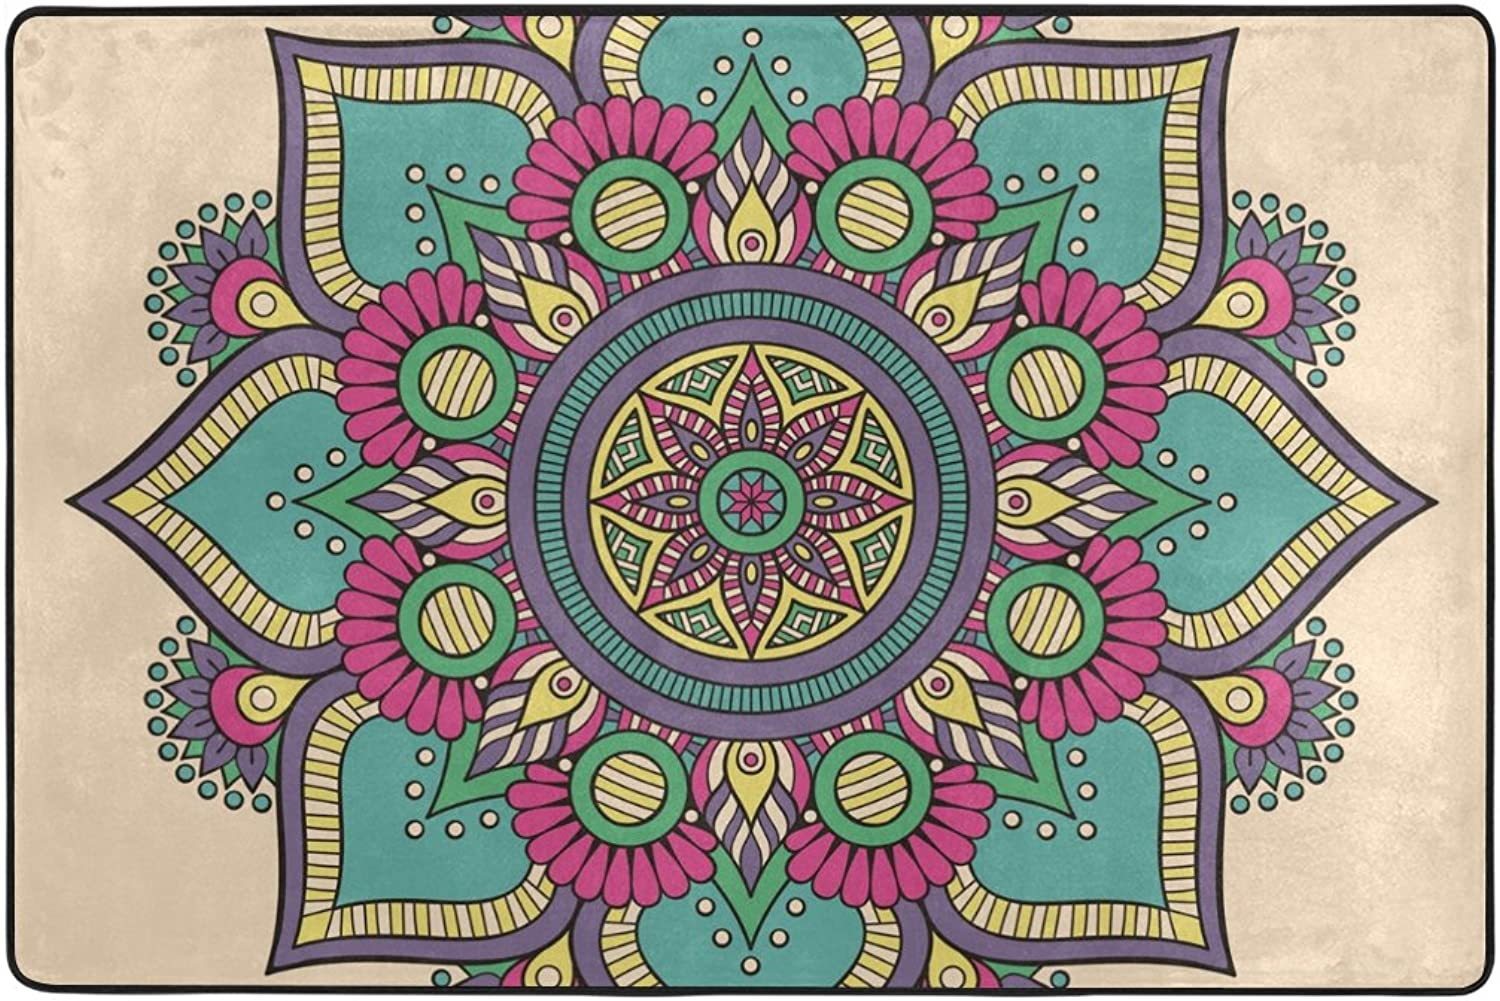 Floral Mandala Decorative Pattern Area Rugs Door Mat 6'x4' Polyester Nonslip Entrance Home Decor for Bedroom Living Room Mats Front Indoor Outdoor